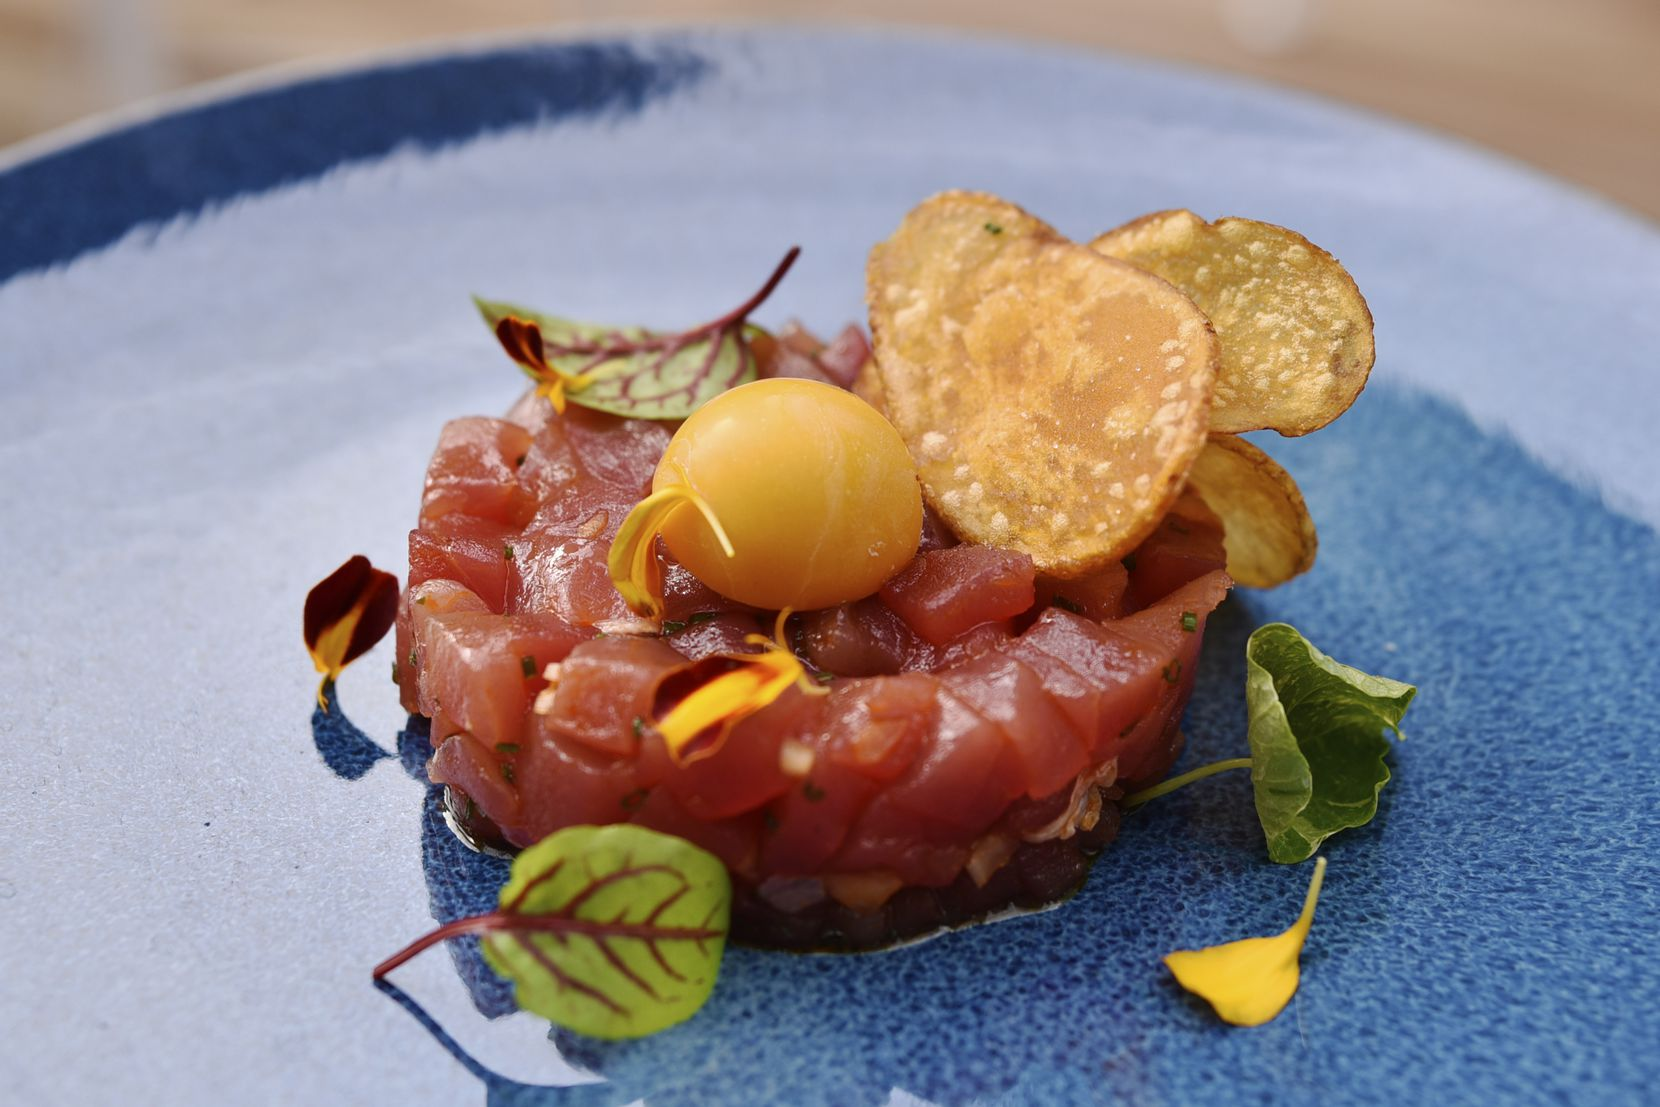 Tuna tartare, which is an appetizer, is served with radish, soy-lime vinaigrette and sea salt chips.